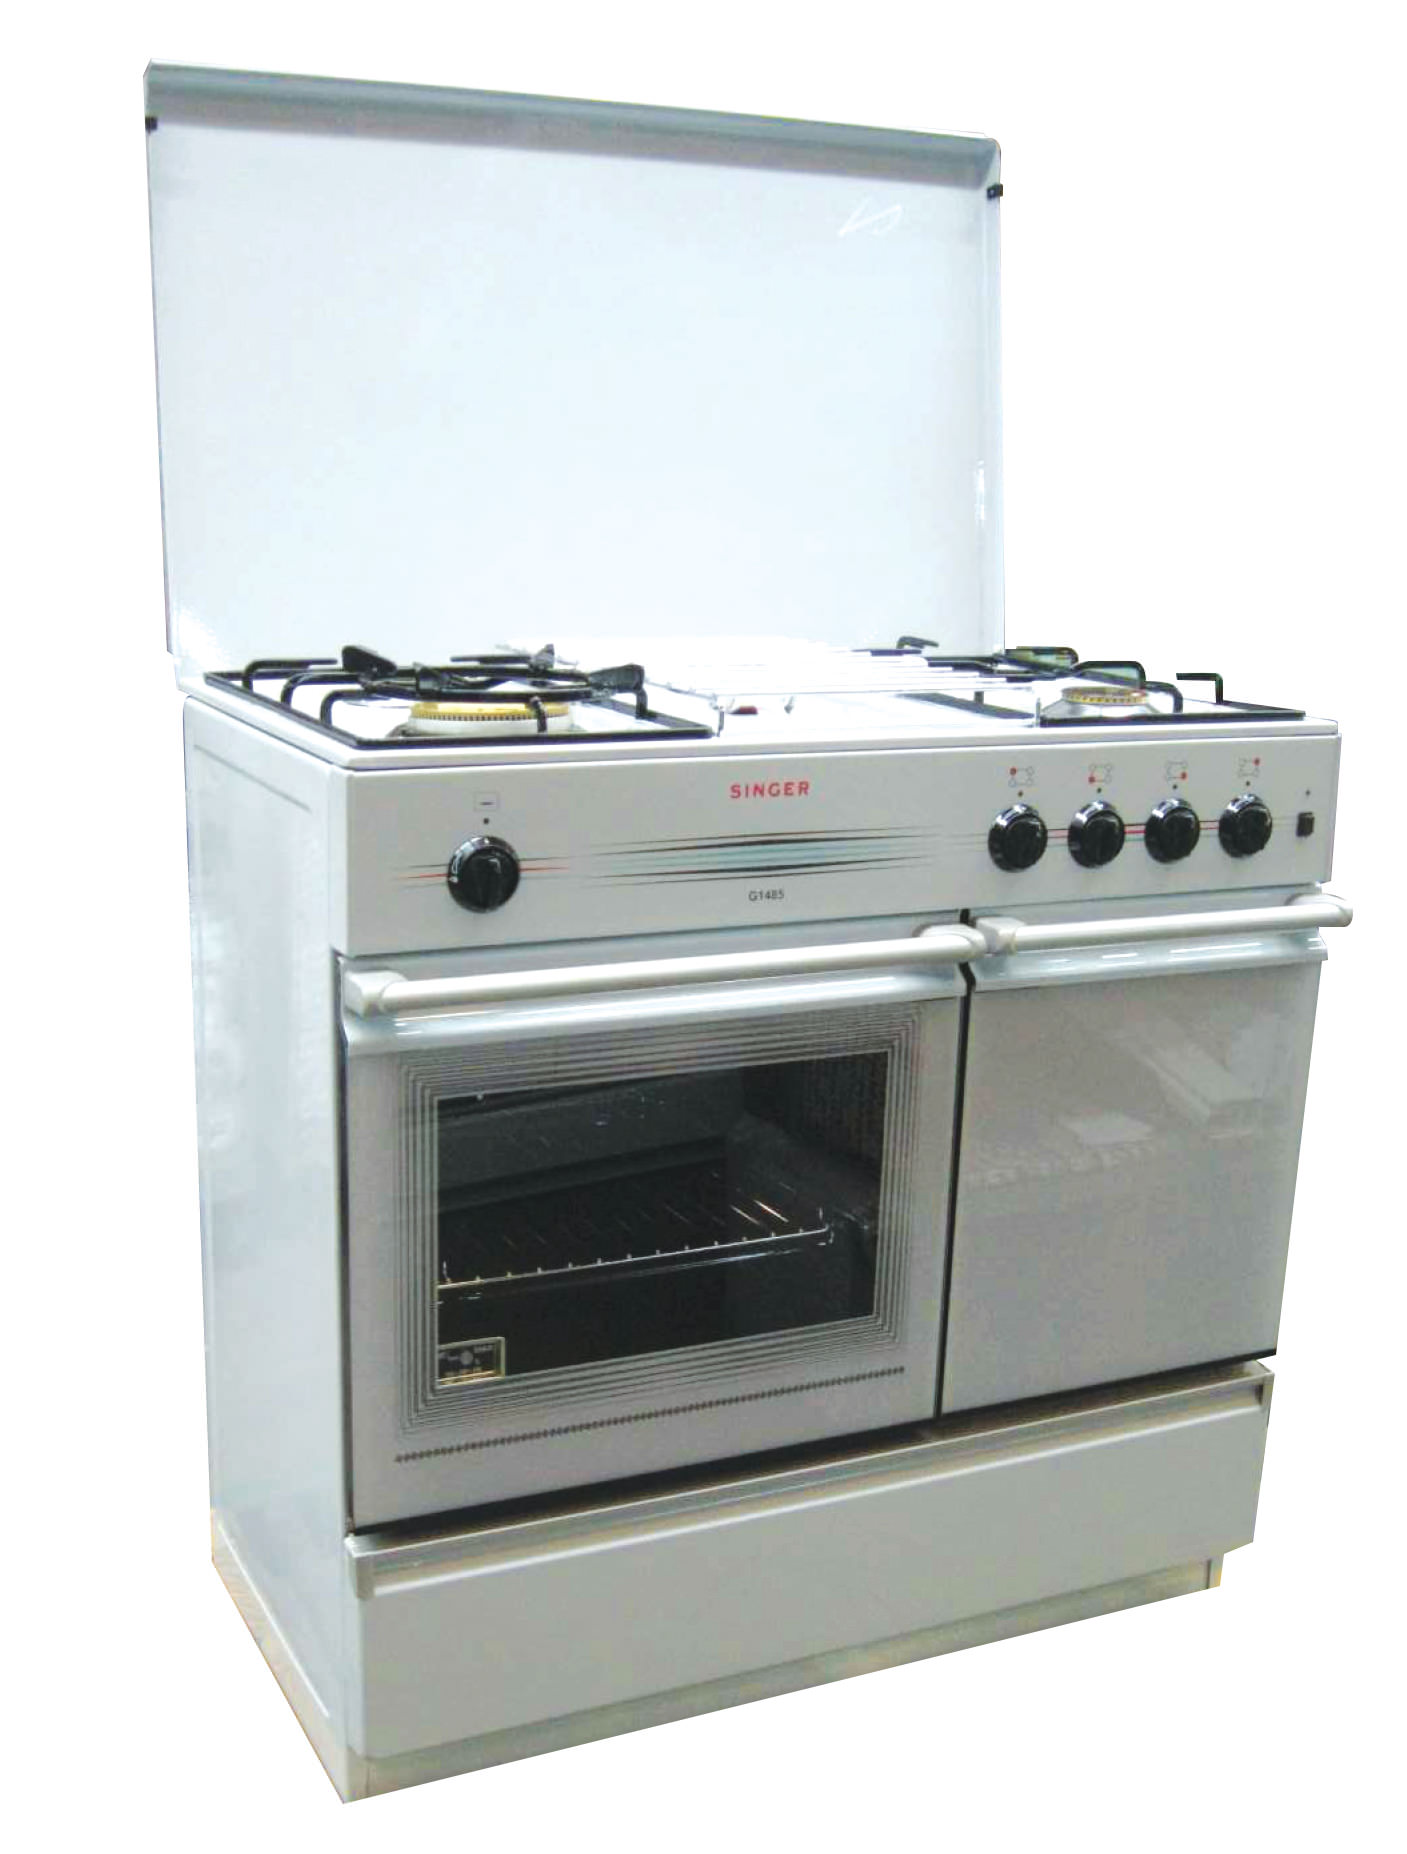 Countertop Oven Gas : Electric Oven/ Gas Cooker/ Oven Toaster Singer Malaysia